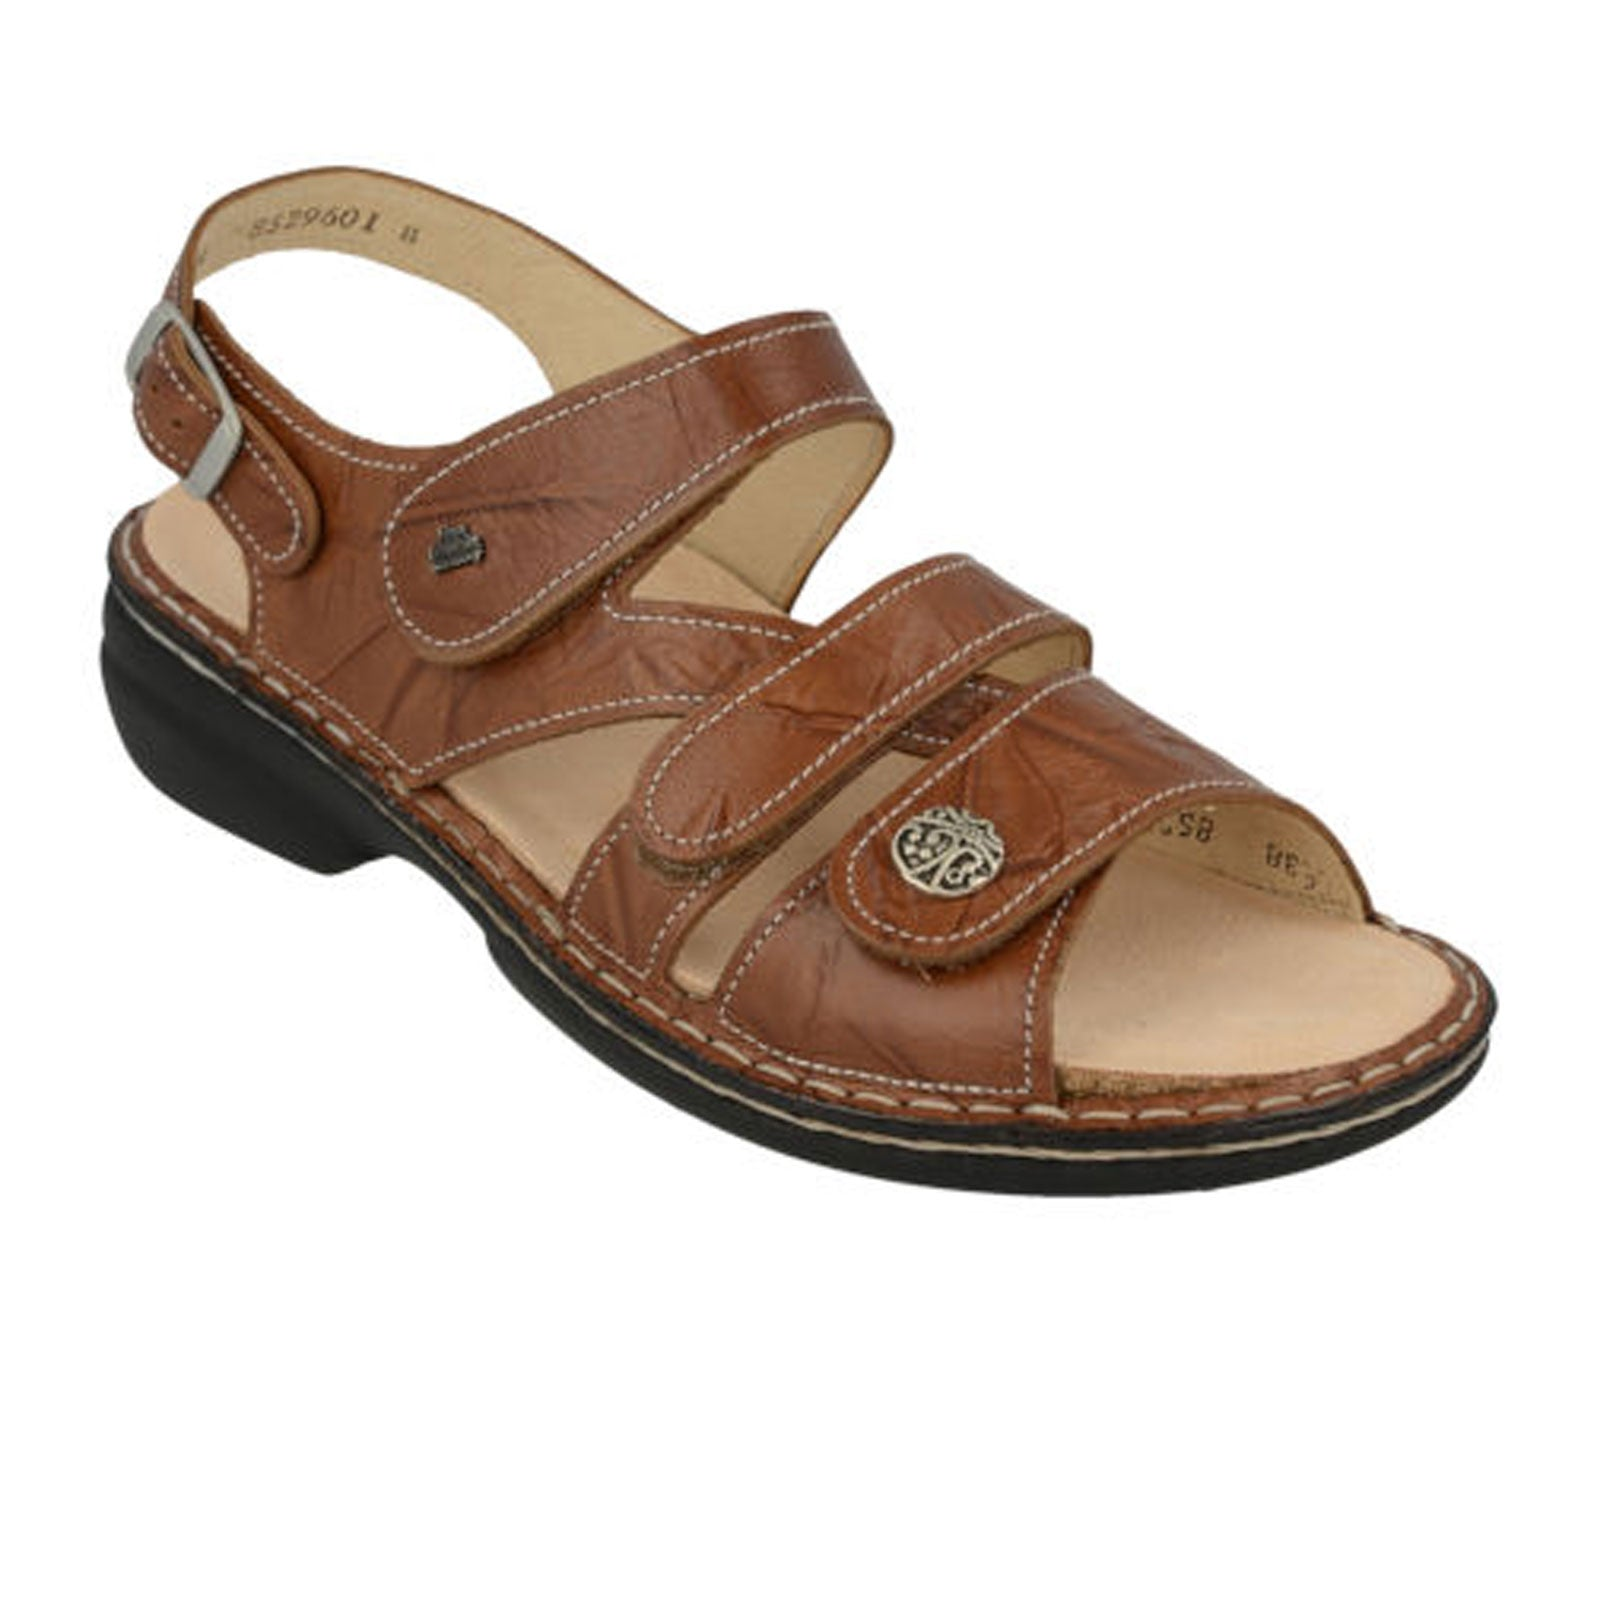 Finn Comfort Gomera-S (Women) - Cognac Sandals|Backstrap Sandals - The Heel Shoe Fitters